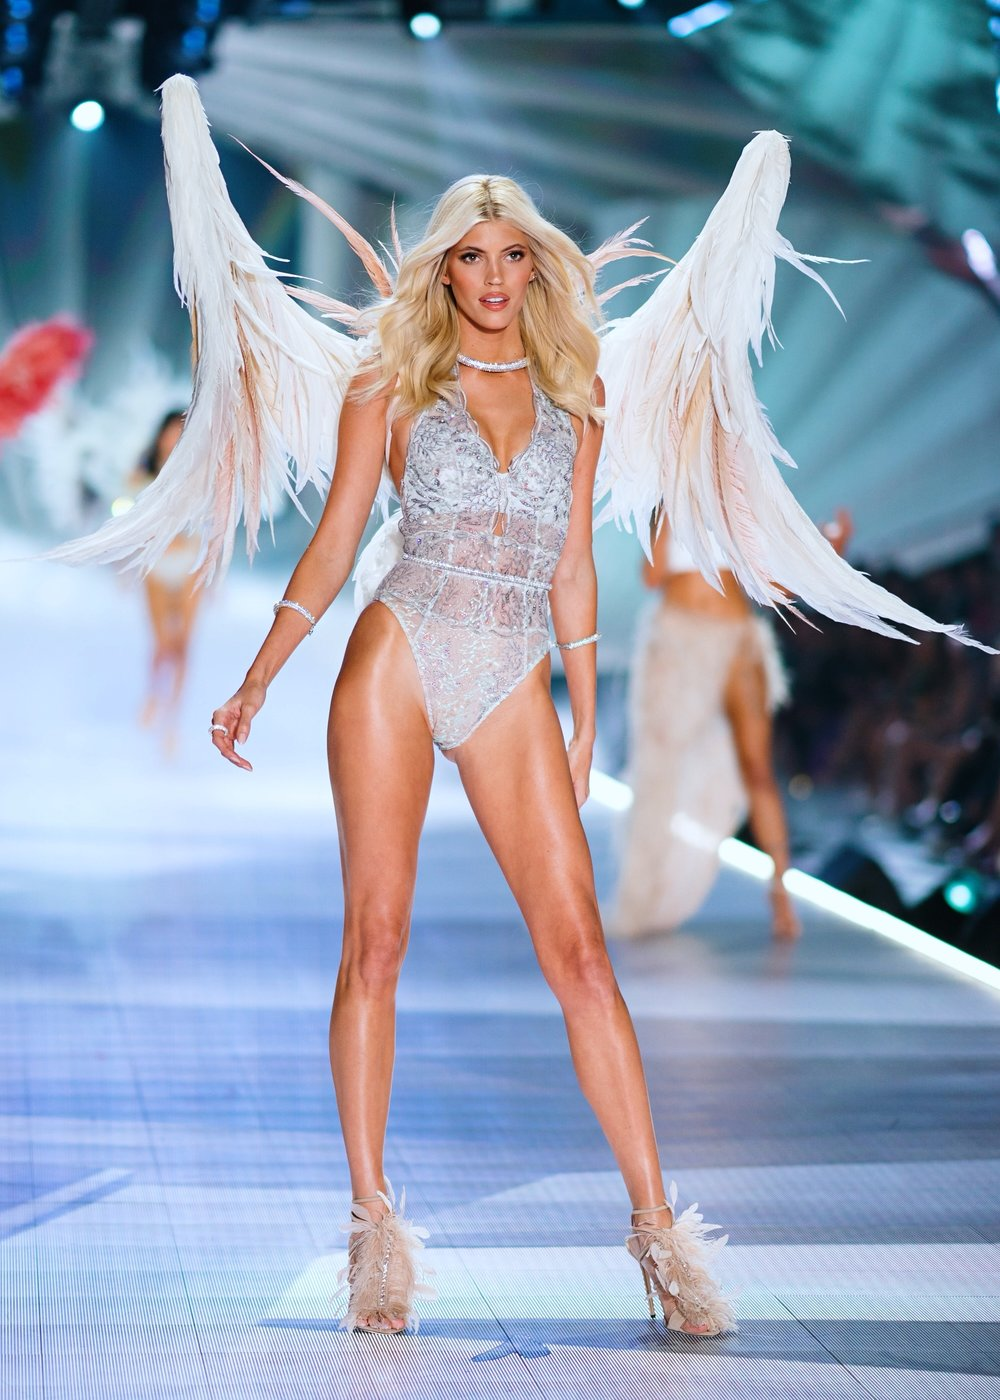 Devon Windsor, Victoria's Secret, Victoria's Secret Fashion Show, Super Model, Modeling, Celebrity, Devon, VS